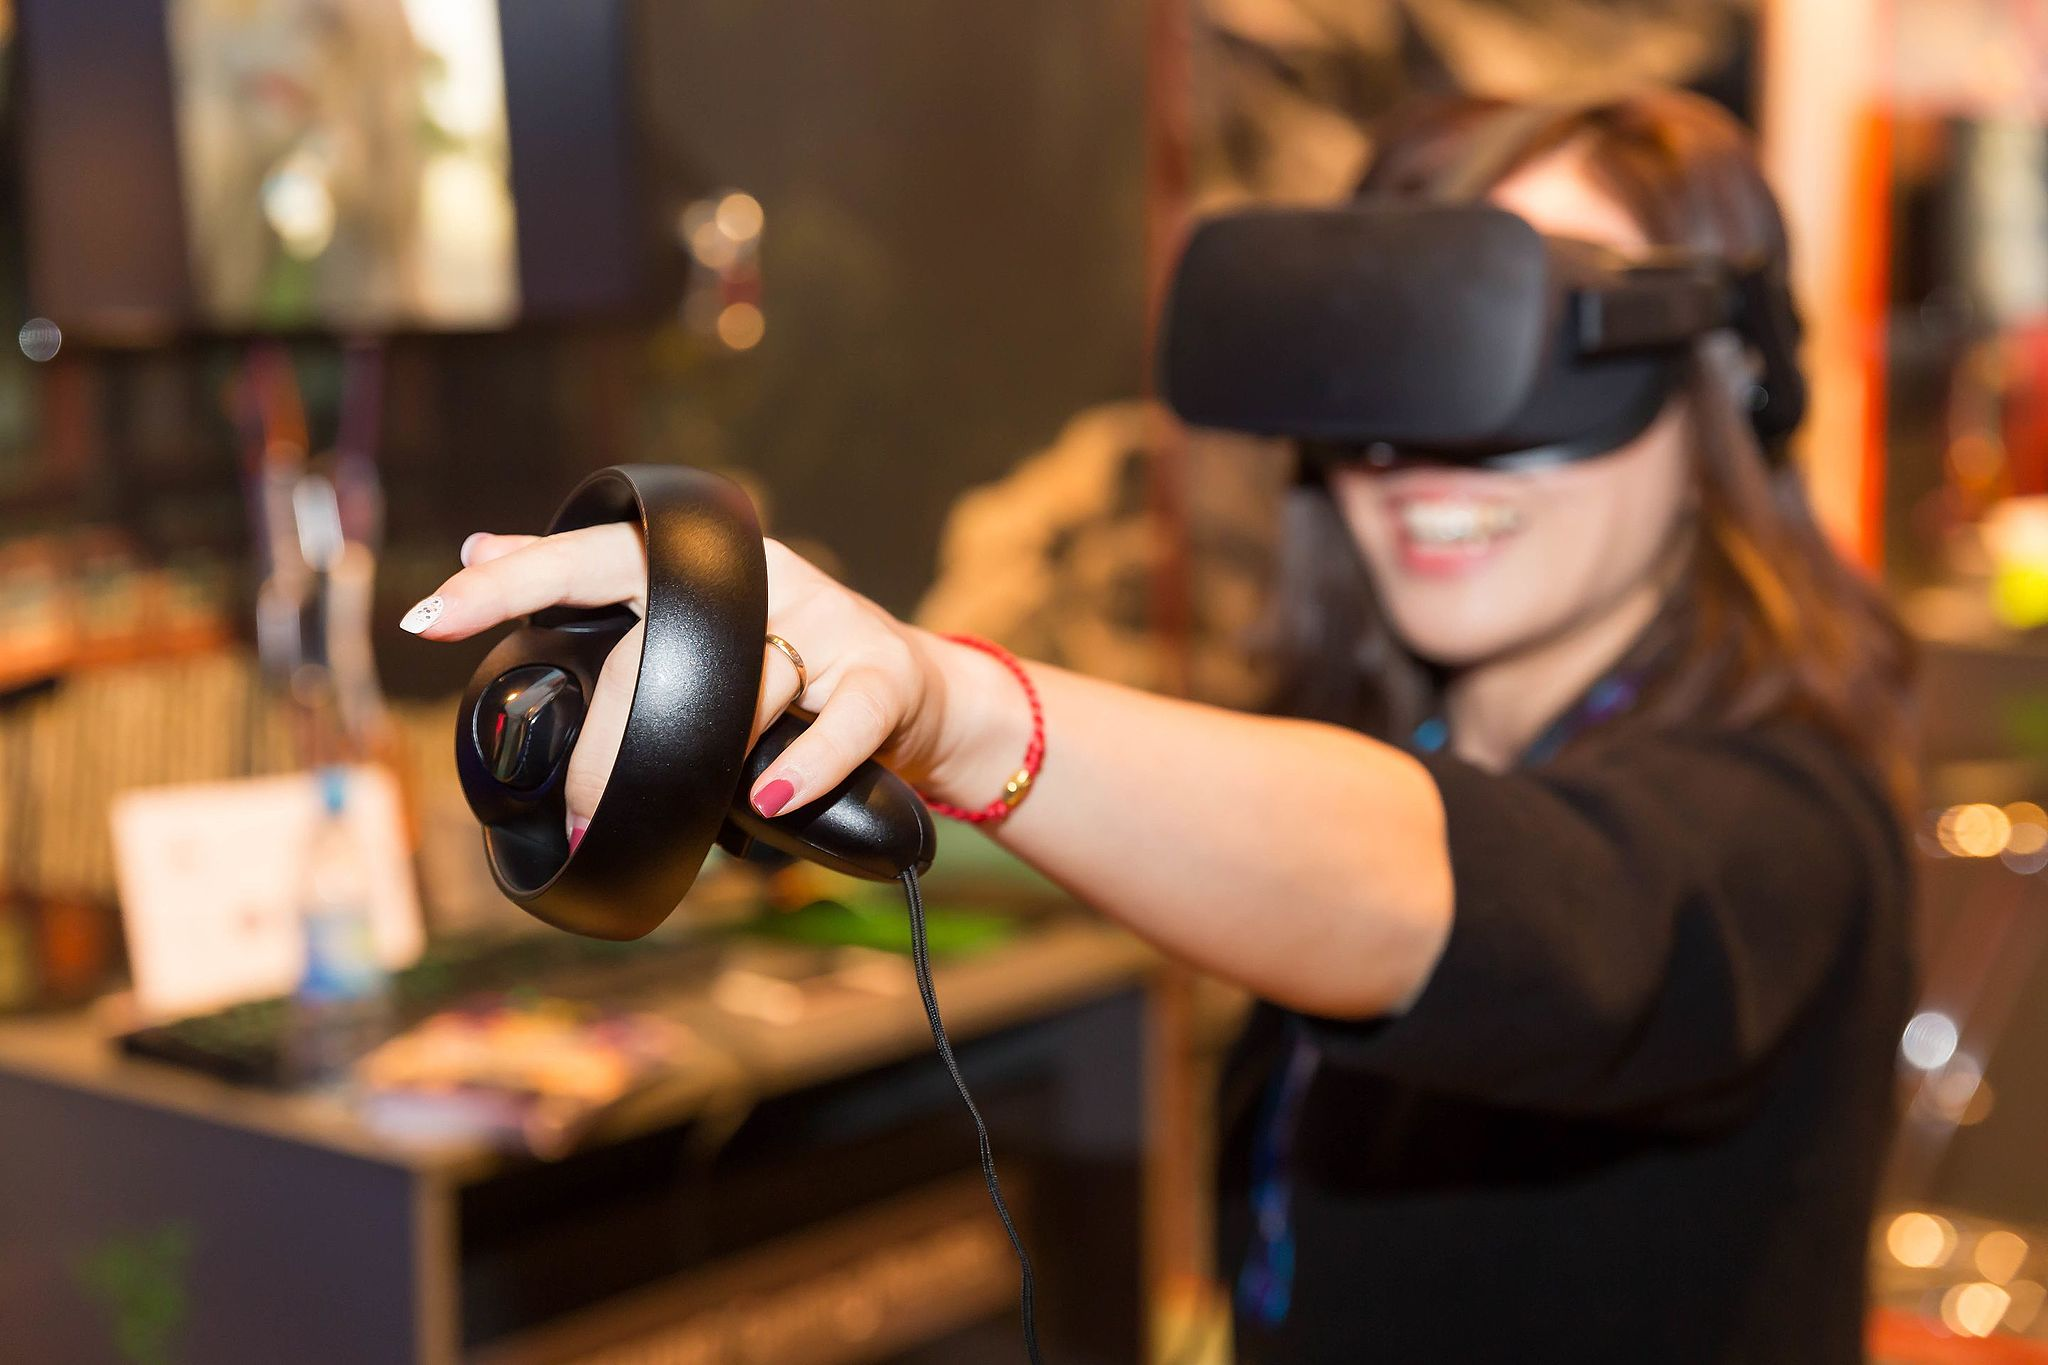 Virtual Reality. By Marco Verch (VR Game The Climb: Oculus Rift mit Touch) [CC BY 2.0 (http://creativecommons.org/licenses/by/2.0)], via Wikimedia Commons